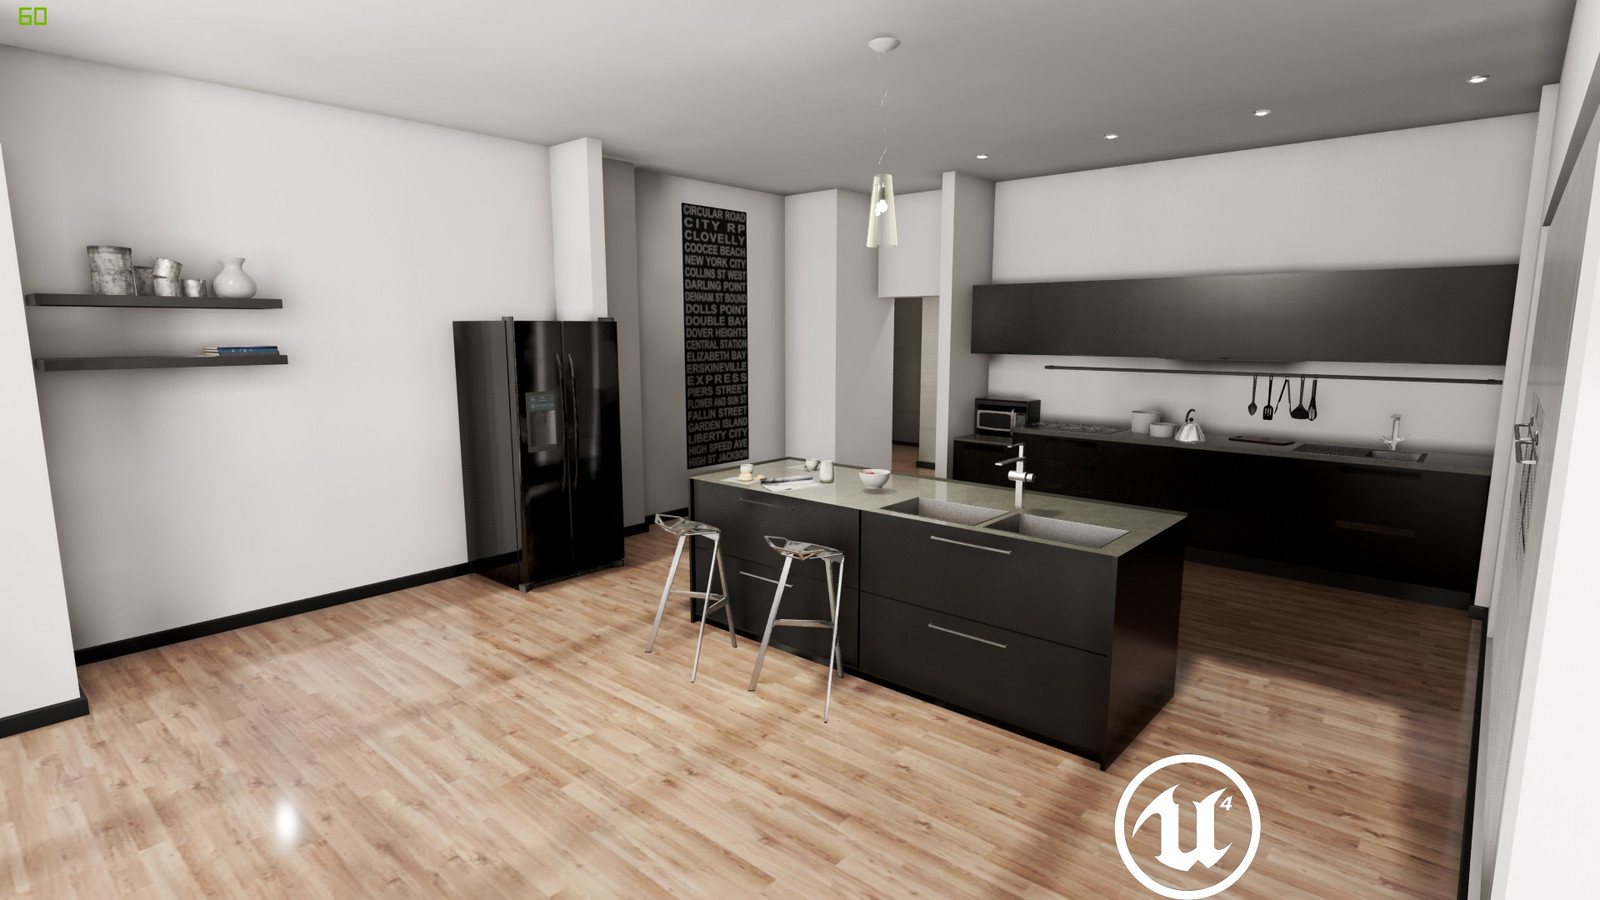 Unreal Engine 4 - NYC Penthouse (WIP)